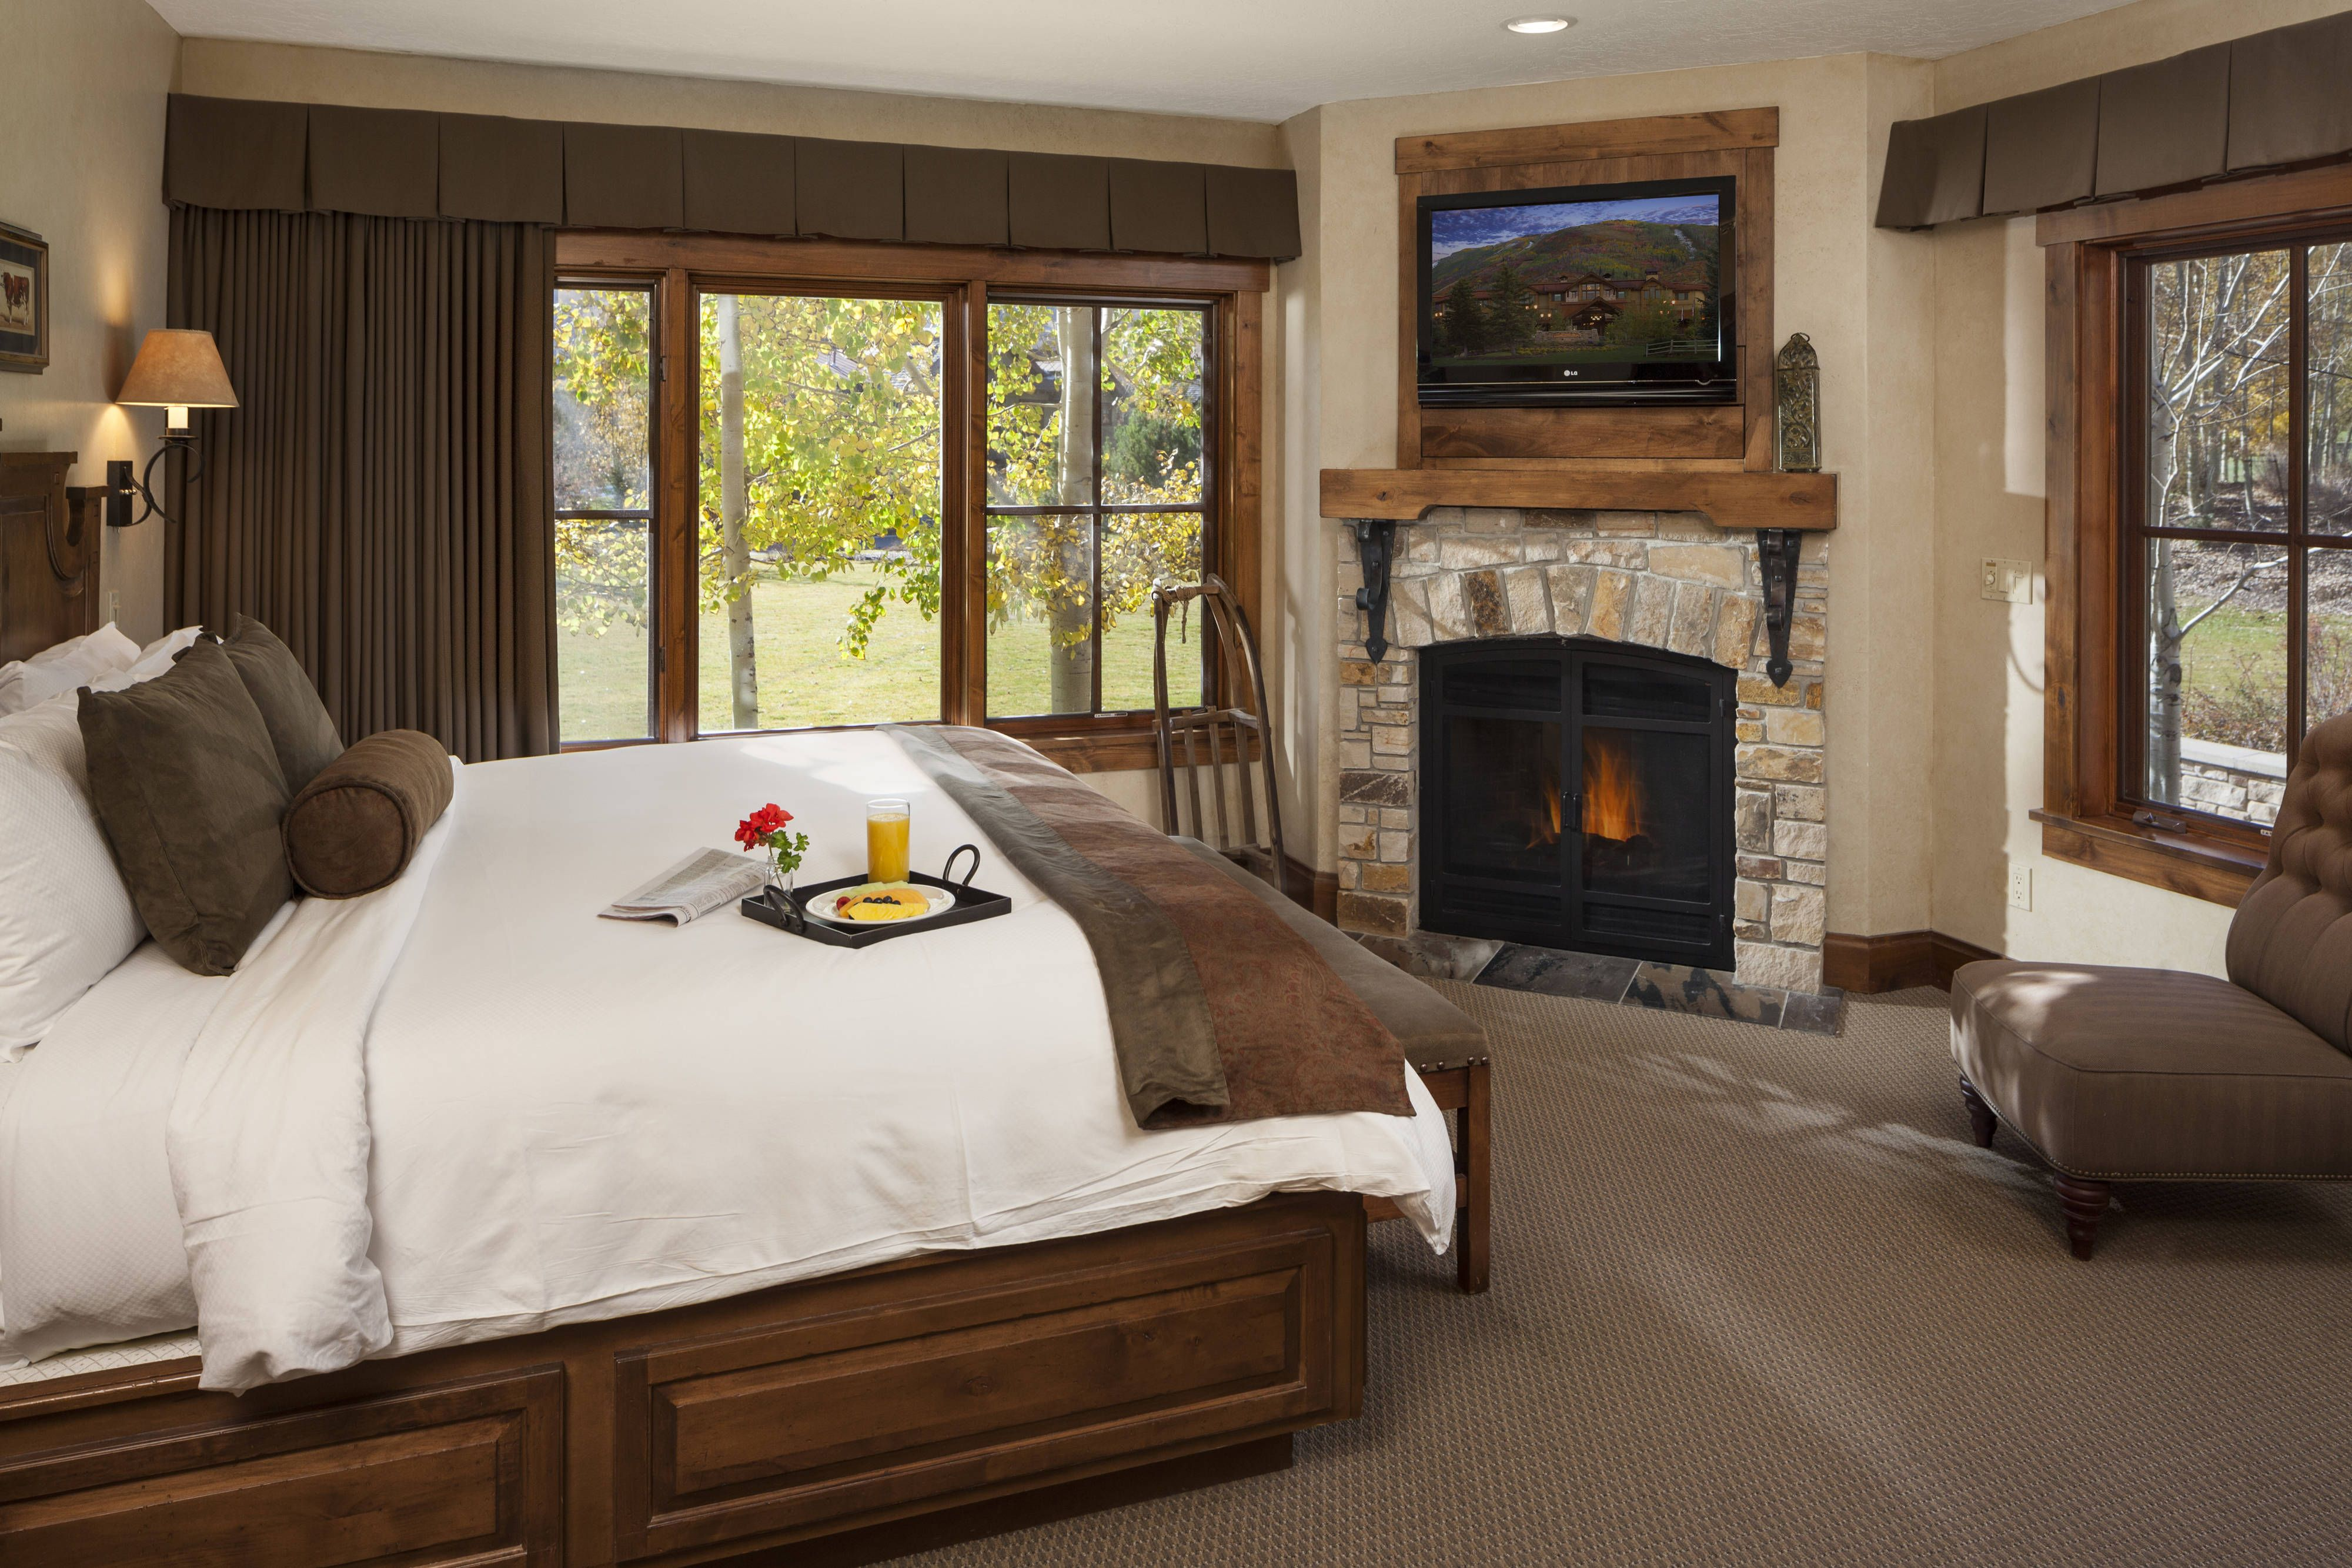 Hotel Park City Autograph Collection Presidential Suite Bedroom